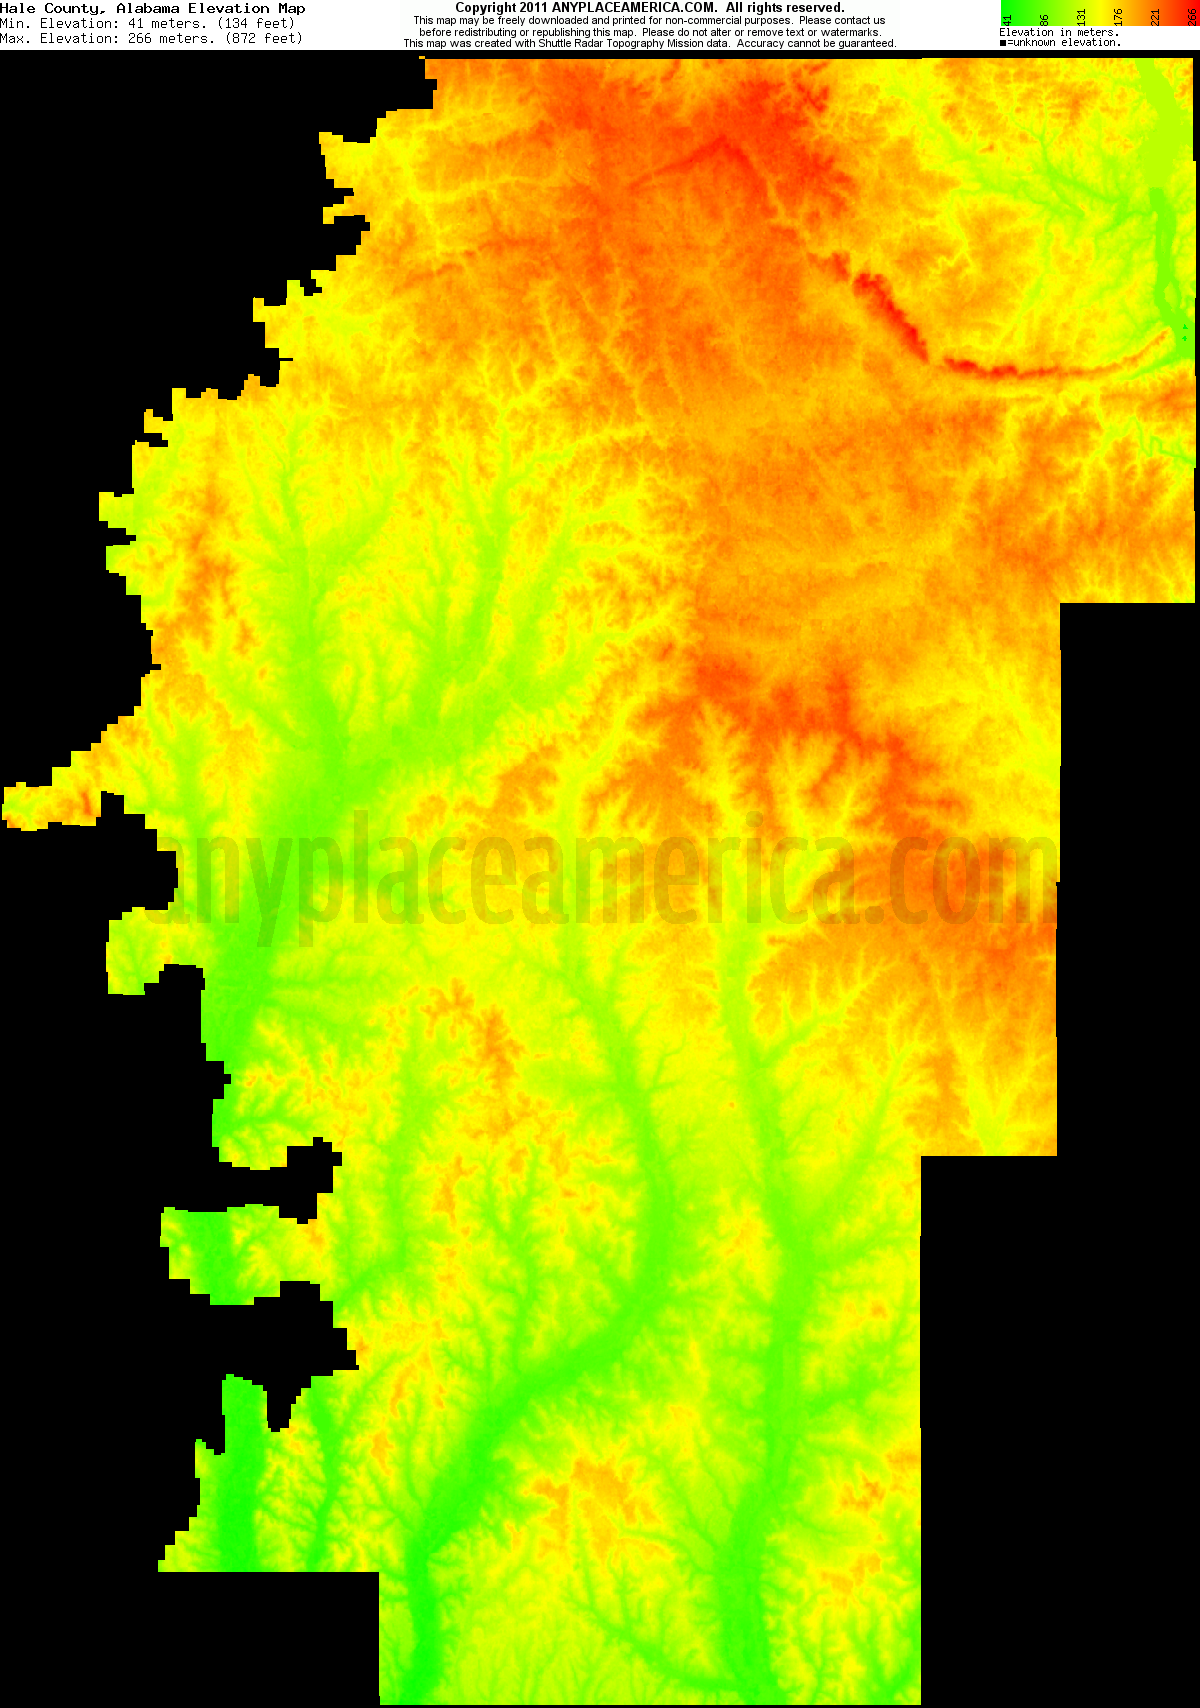 Alabama hale county akron - Download Hale County Elevation Map